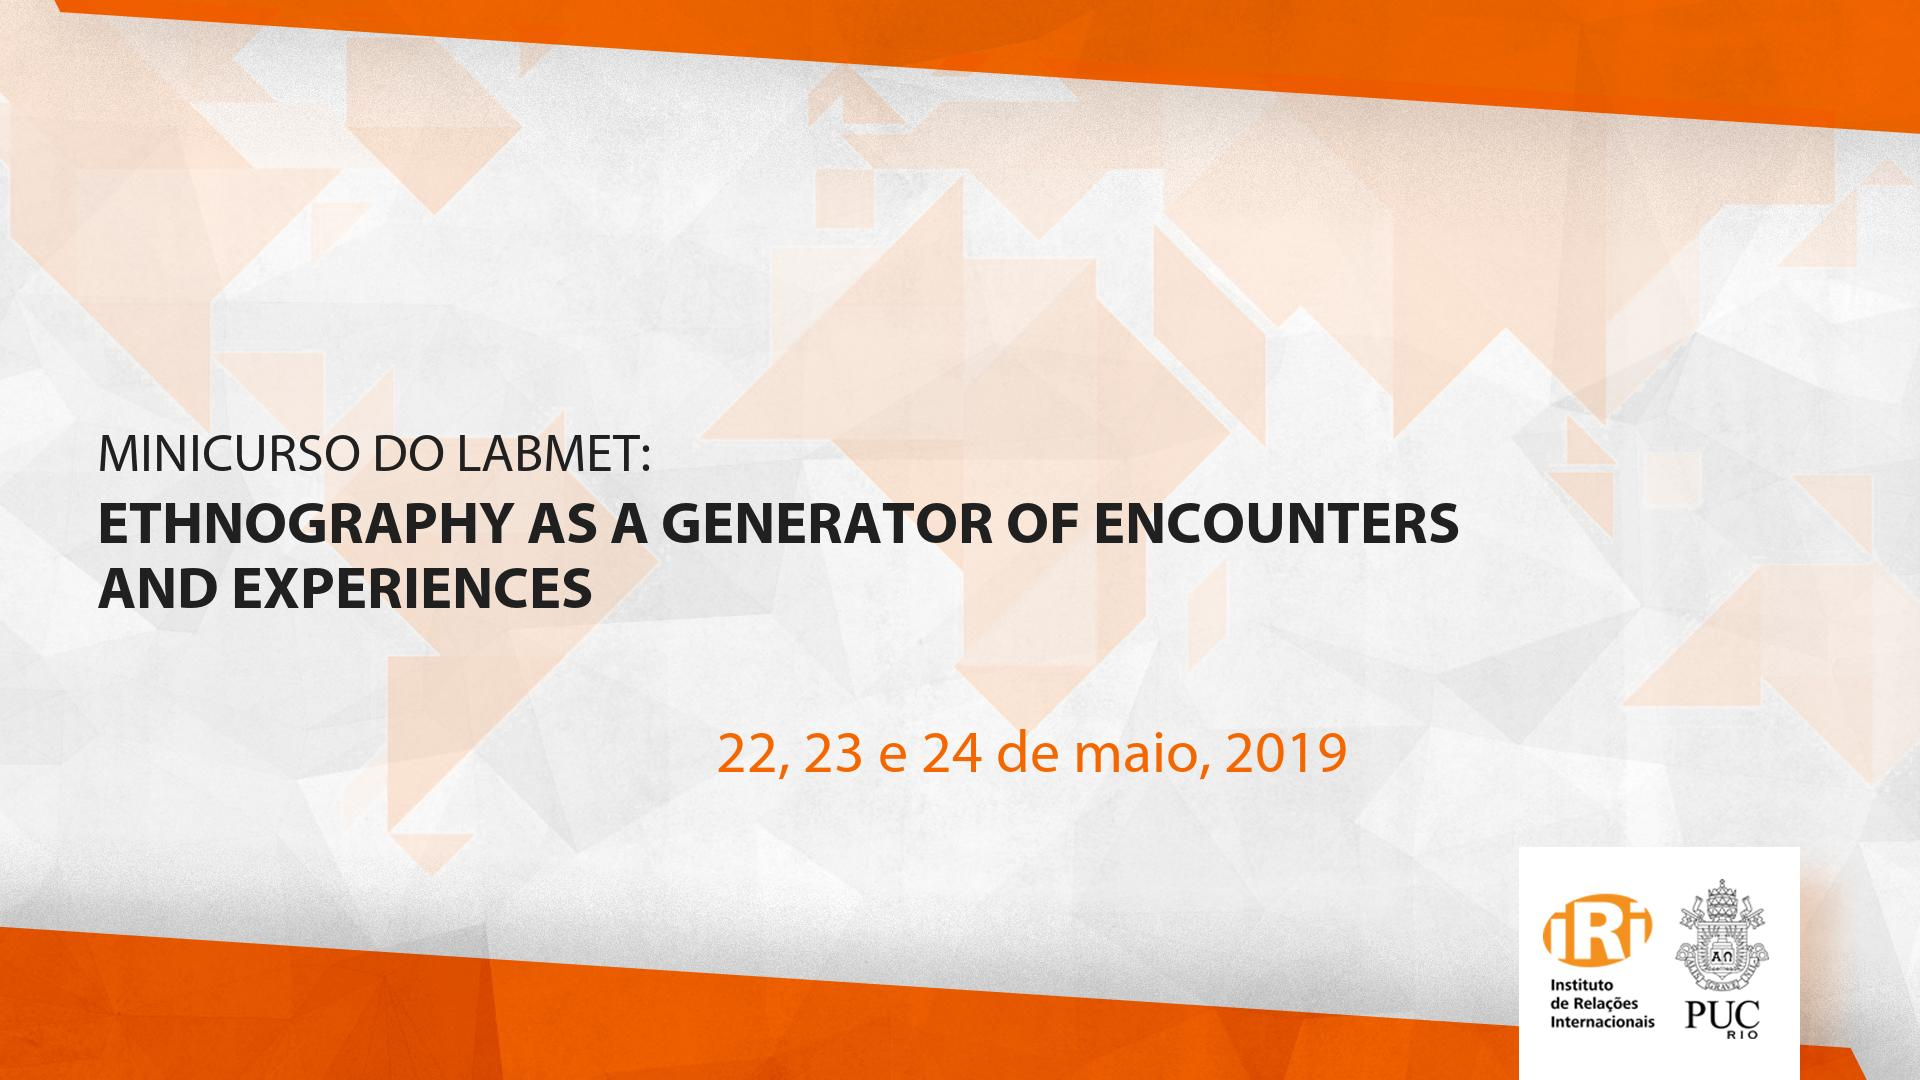 Ethnography as a generator of encounters and experiences